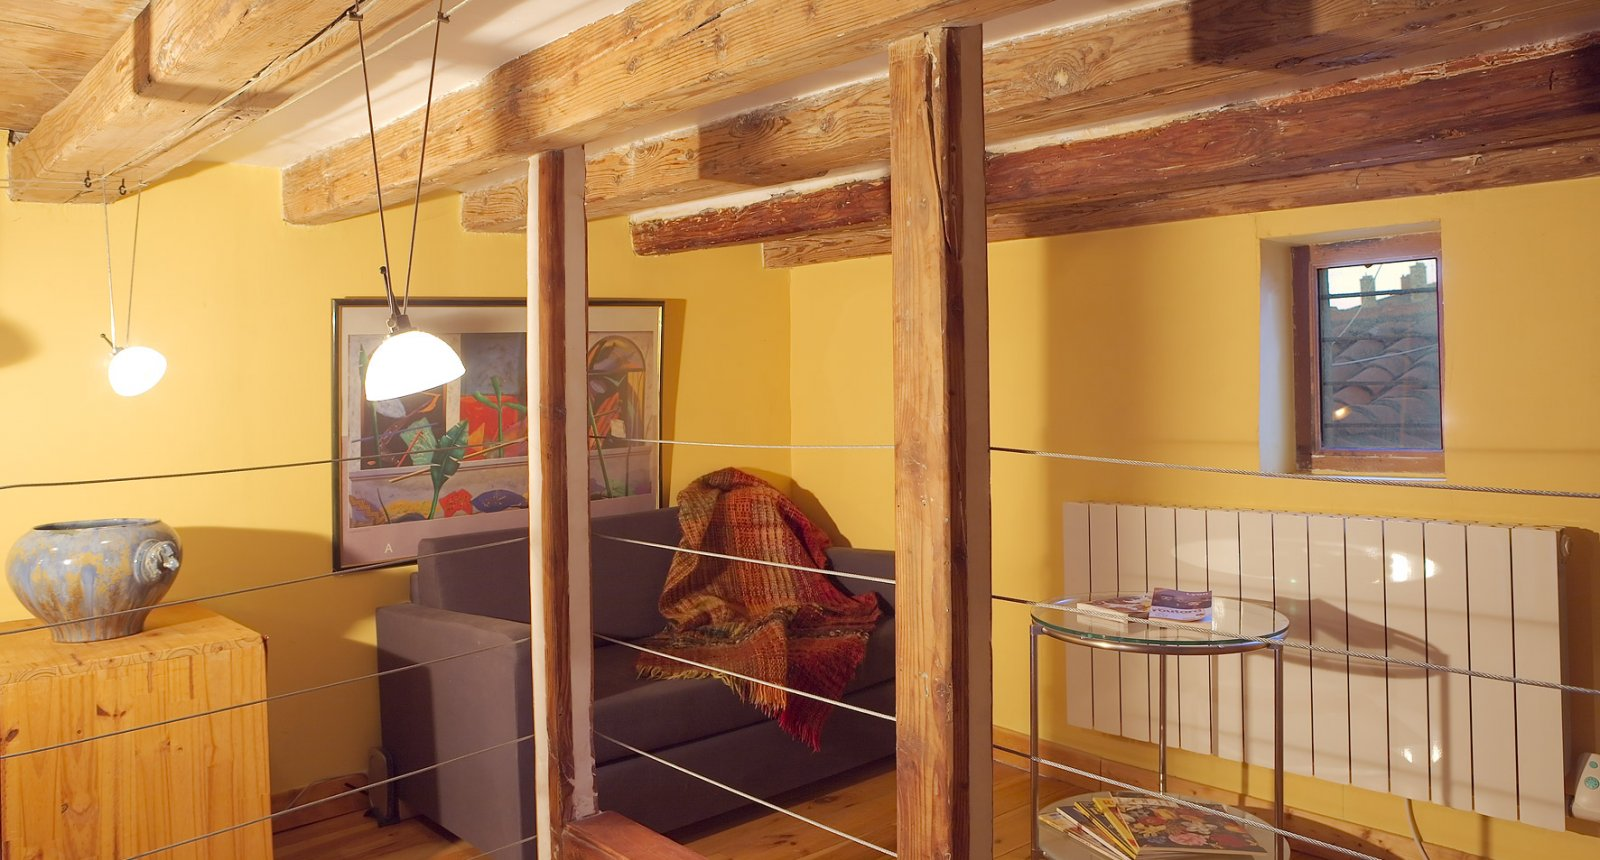 mezzanine of the self-catering apartment